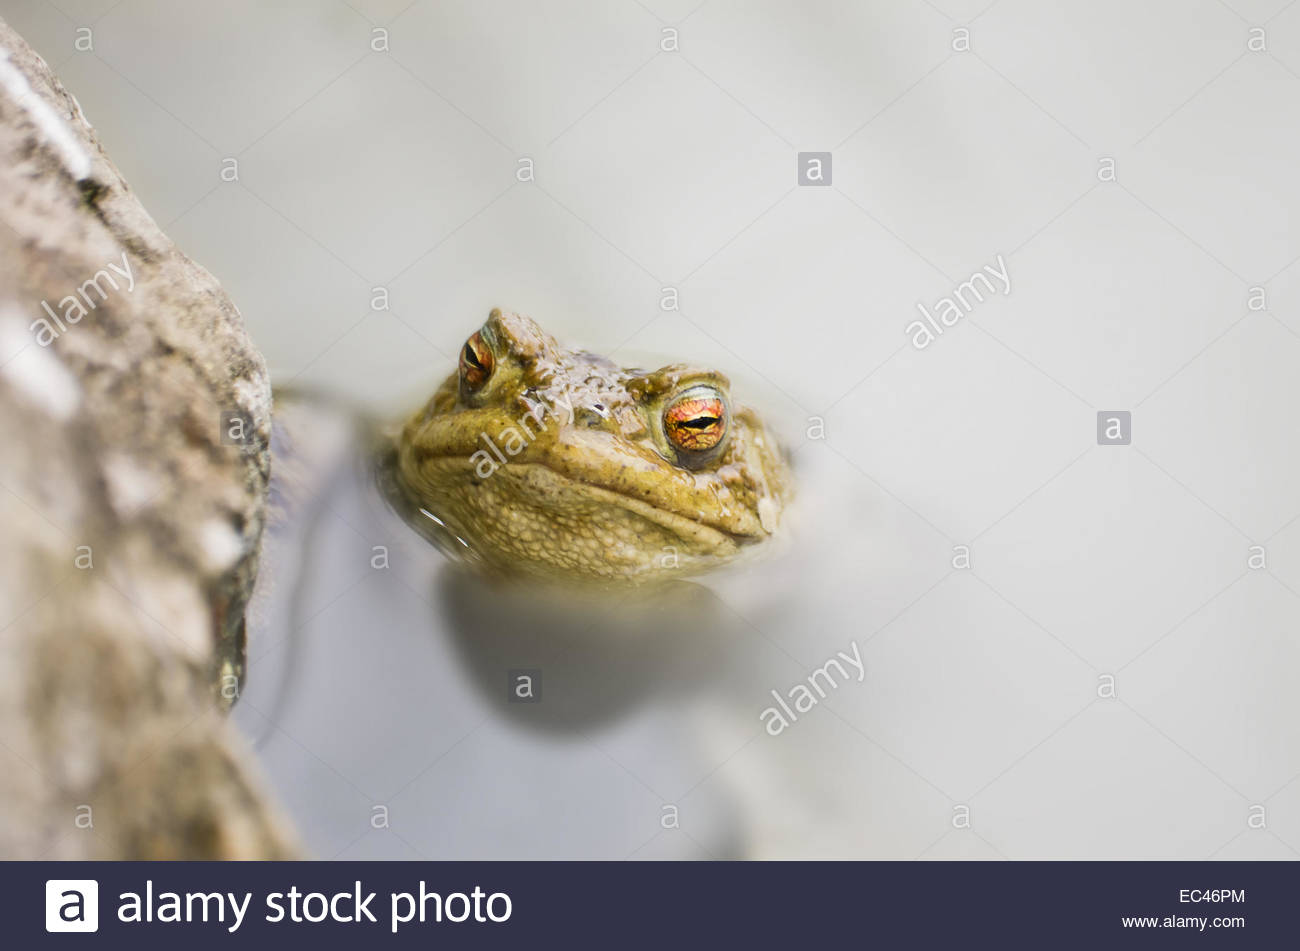 Common Toad, Bufo bufo, in a pond Stock Photo